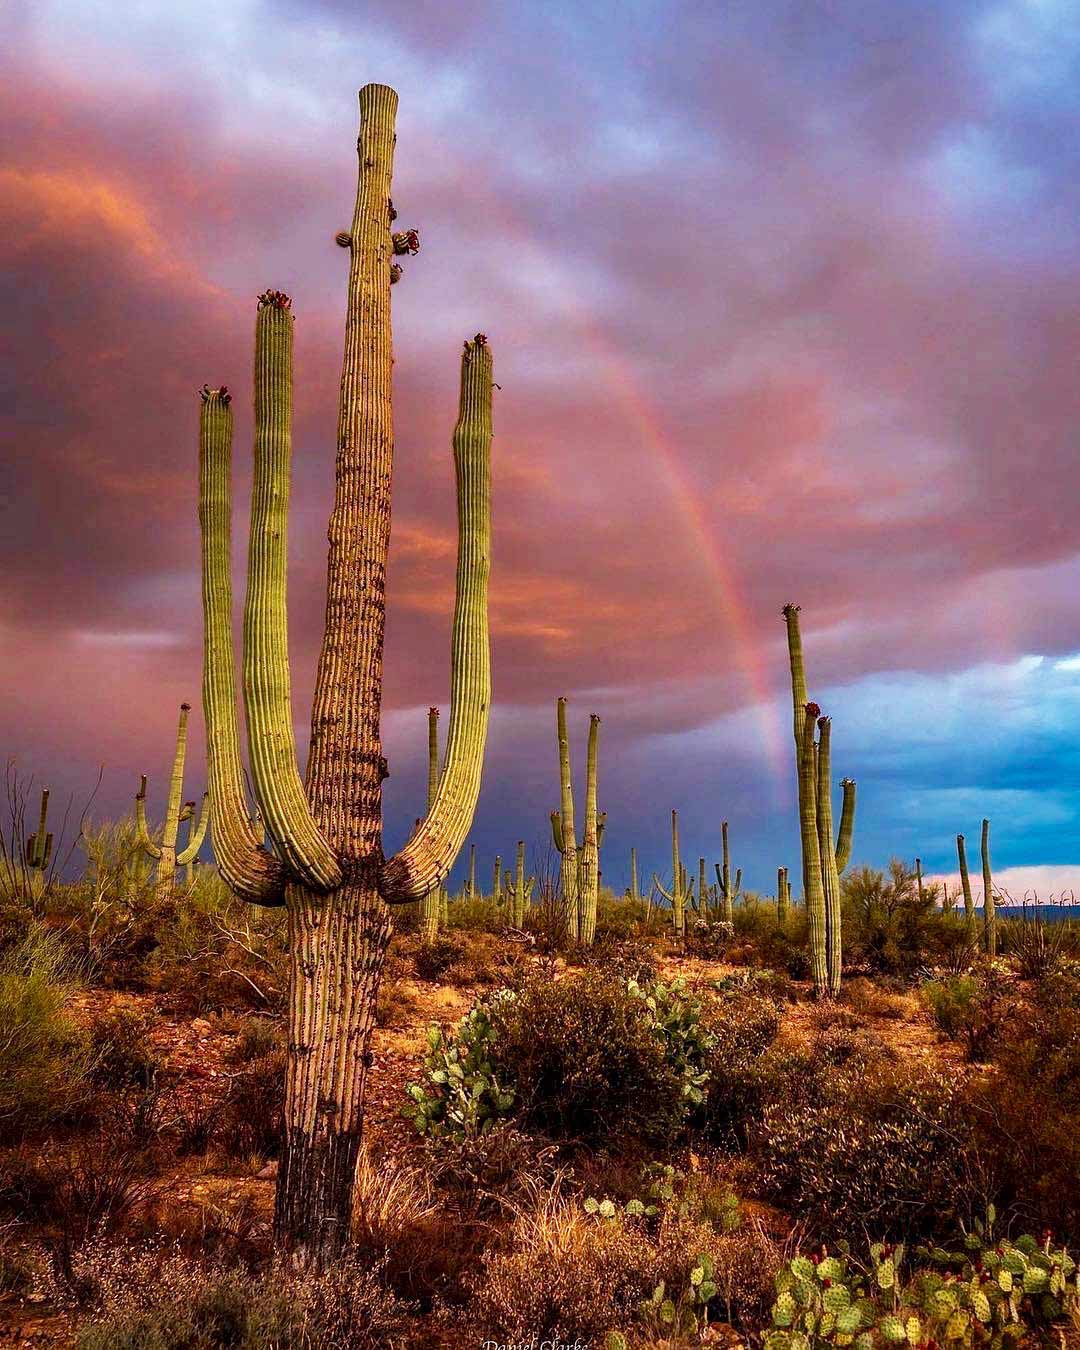 Southern Arizona Bike Tour: Sonoran Desert & Saguaro National Park